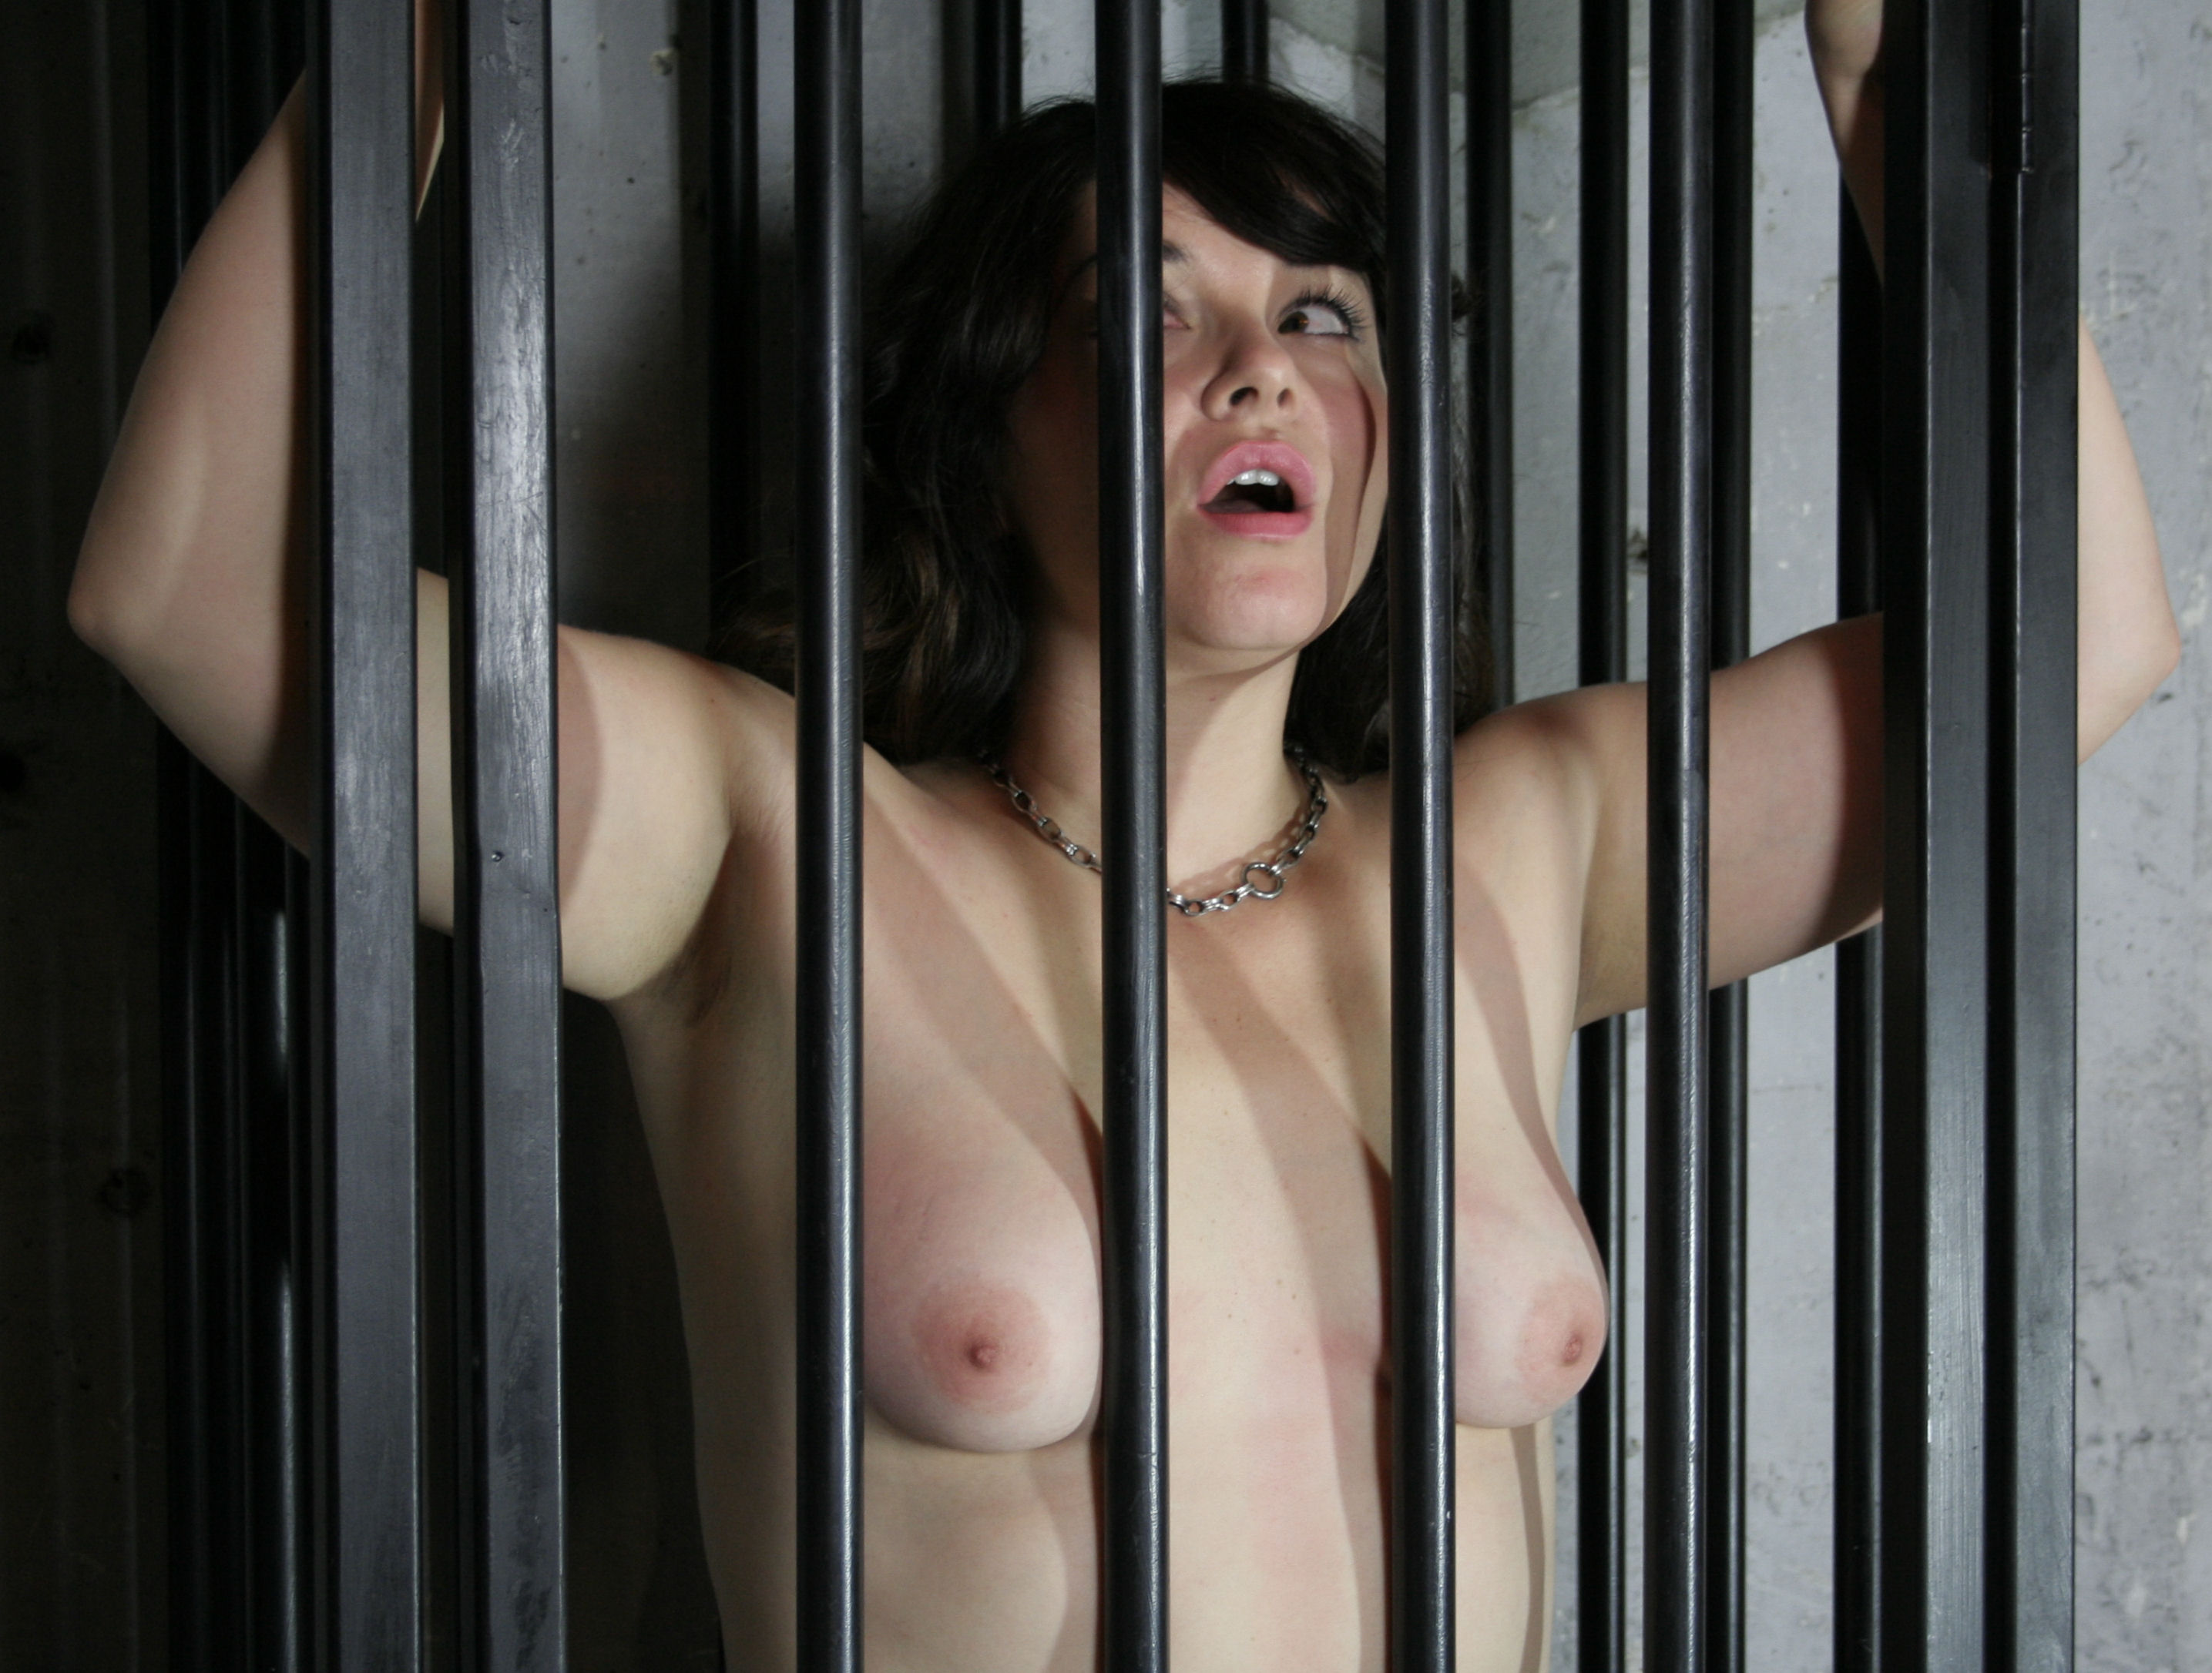 Rather valuable Locked up behind bars